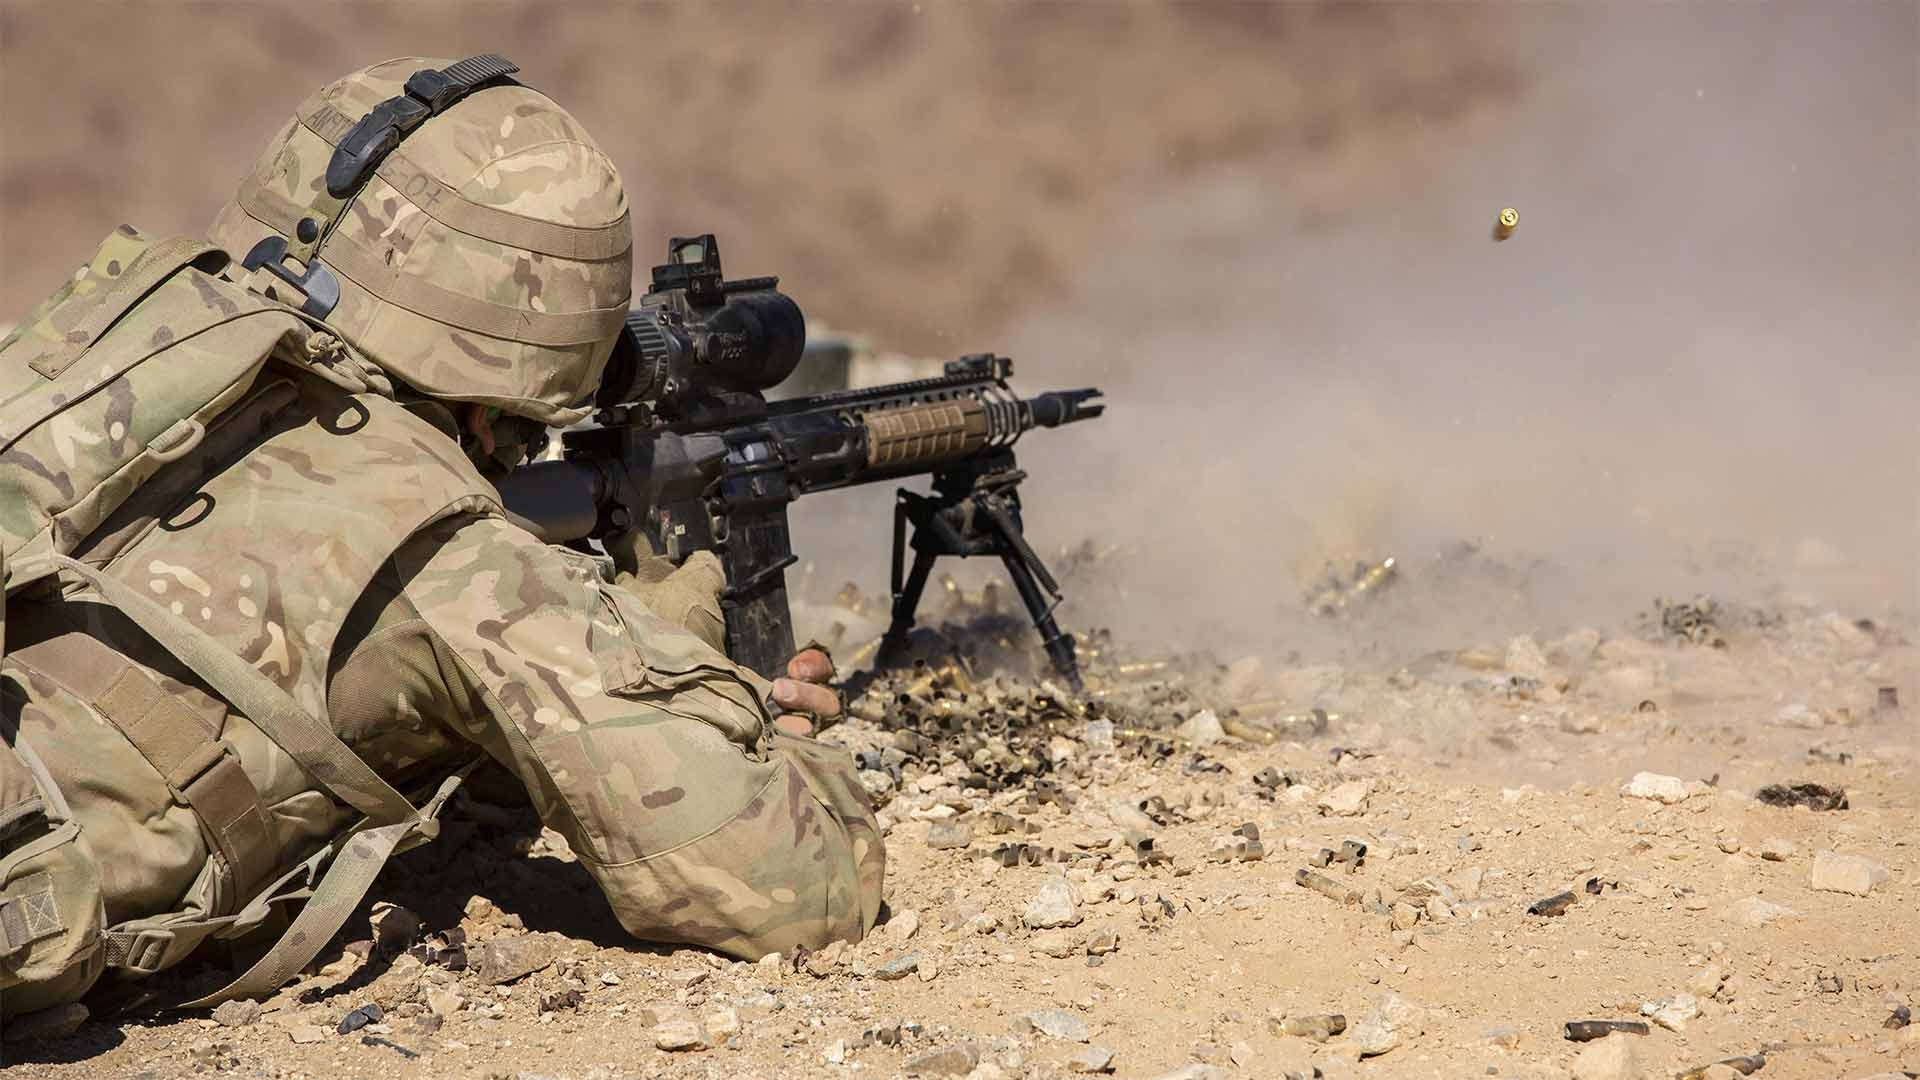 British Royal Marines conduct an assault on Range 205 as part of Exercise Black Alligator aboard the Marine Corps Air Ground Combat Center, Twentynine Palms, Calif., Sept. 14, 2016.